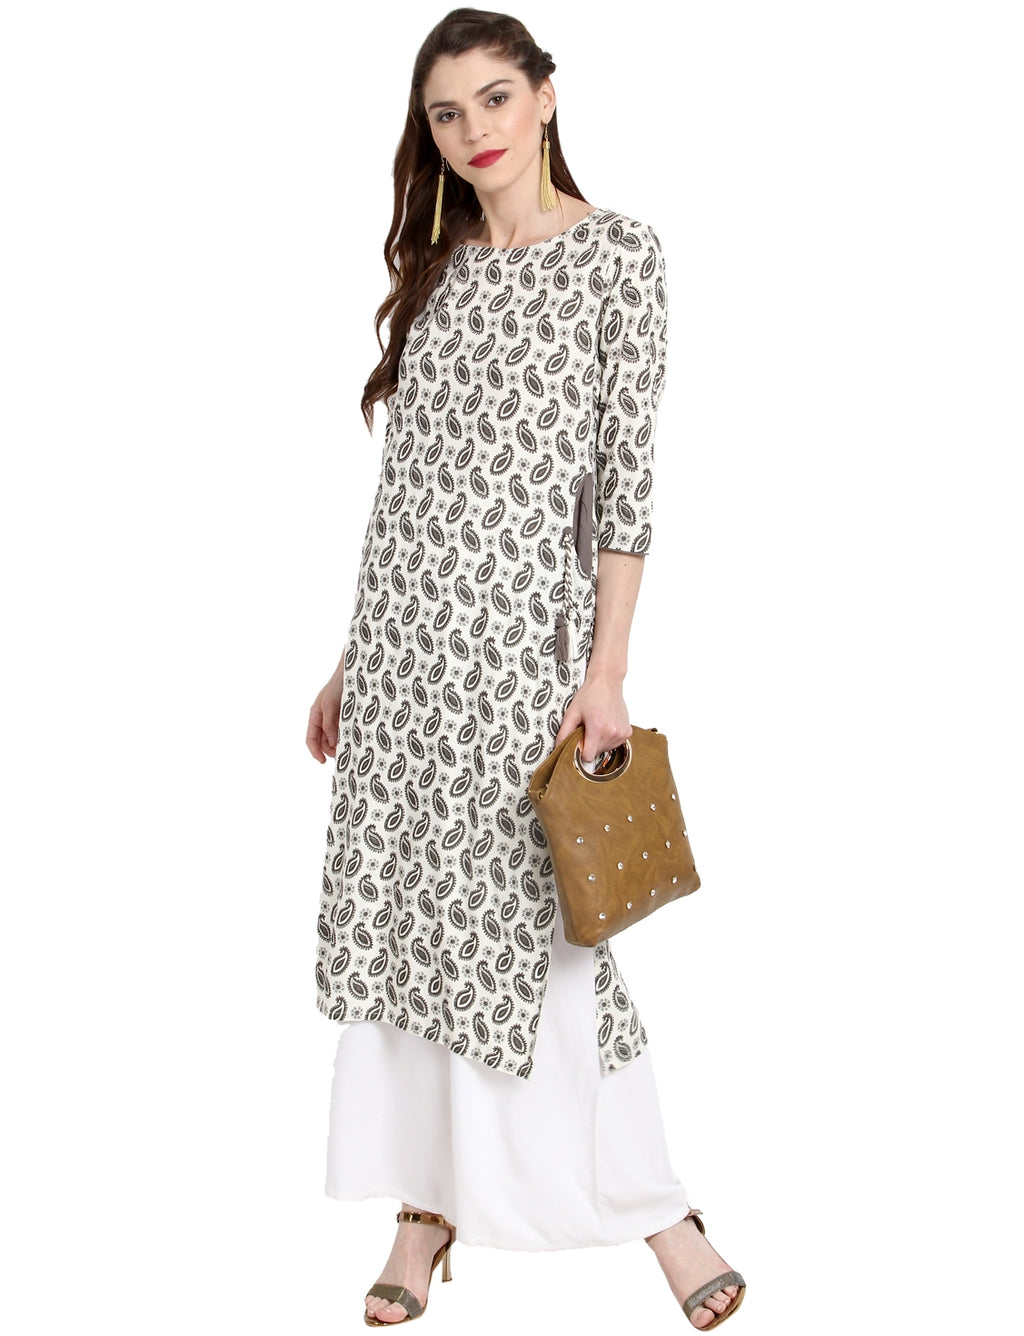 White Color Rayon Readymade Party Wear Kurtis ( Sizes-36,38,40,42,44) Janasya Catlog SJ-10224